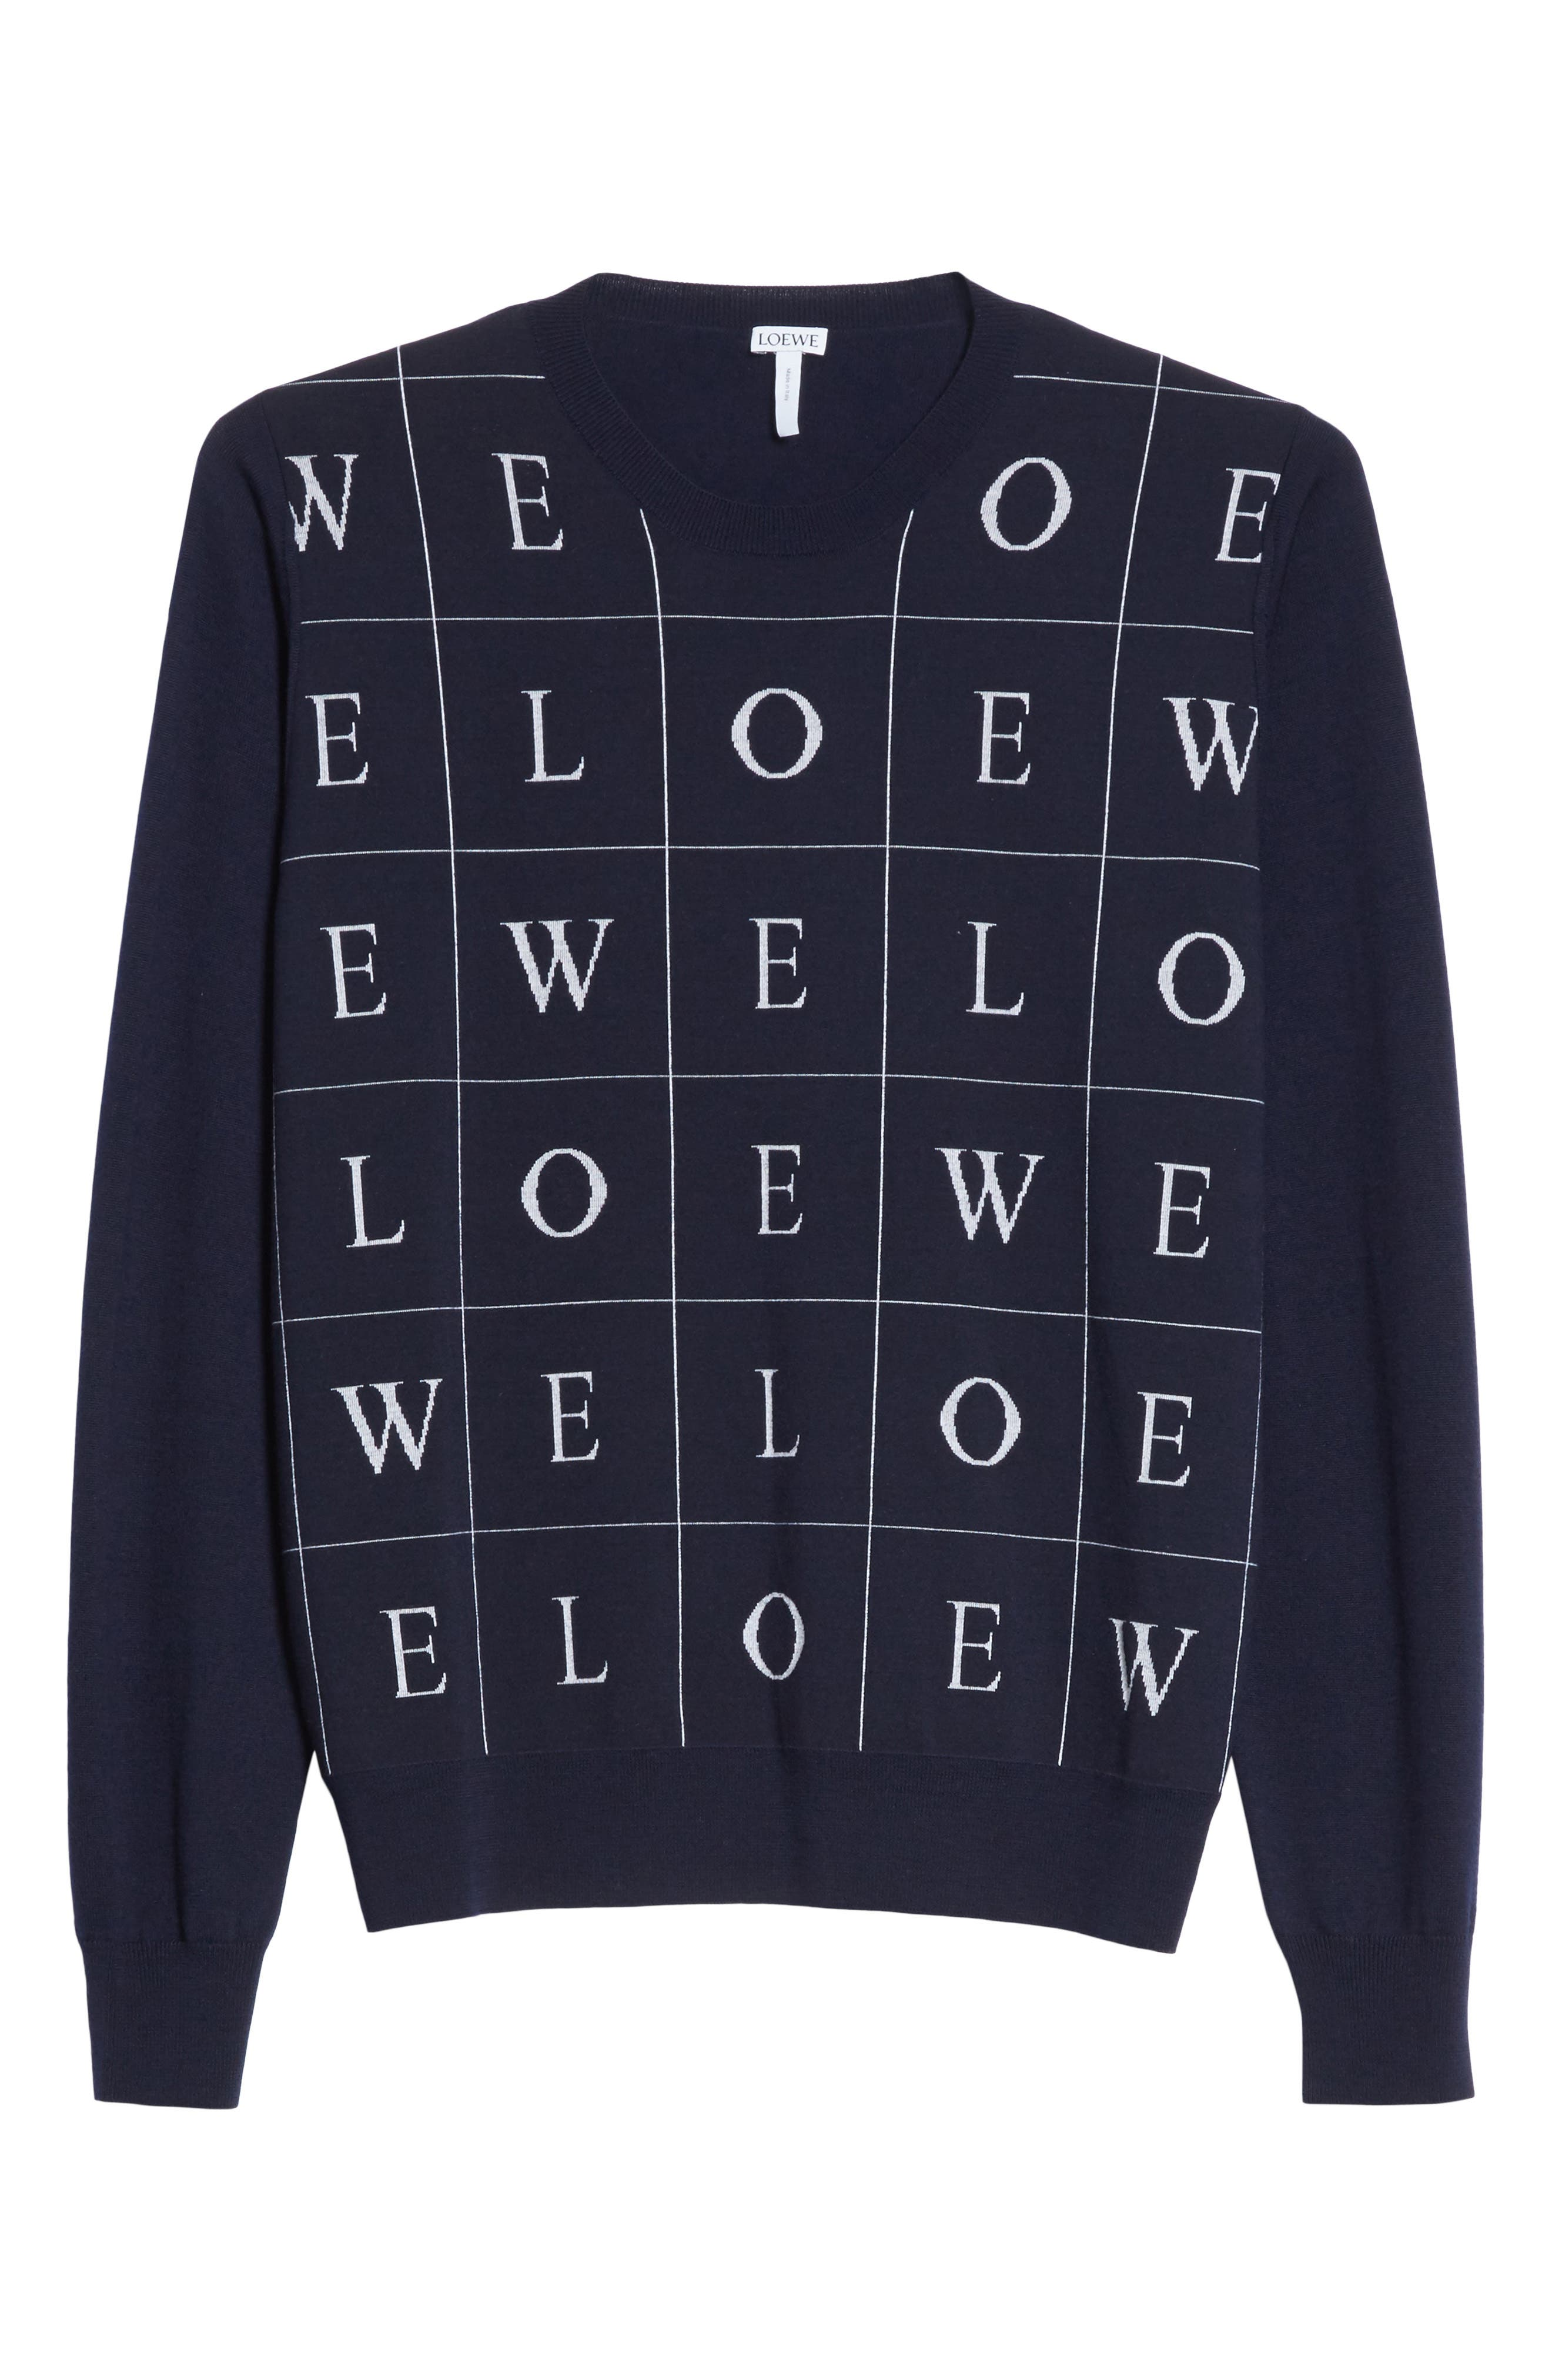 Letters Wool Sweater,                             Alternate thumbnail 6, color,                             410